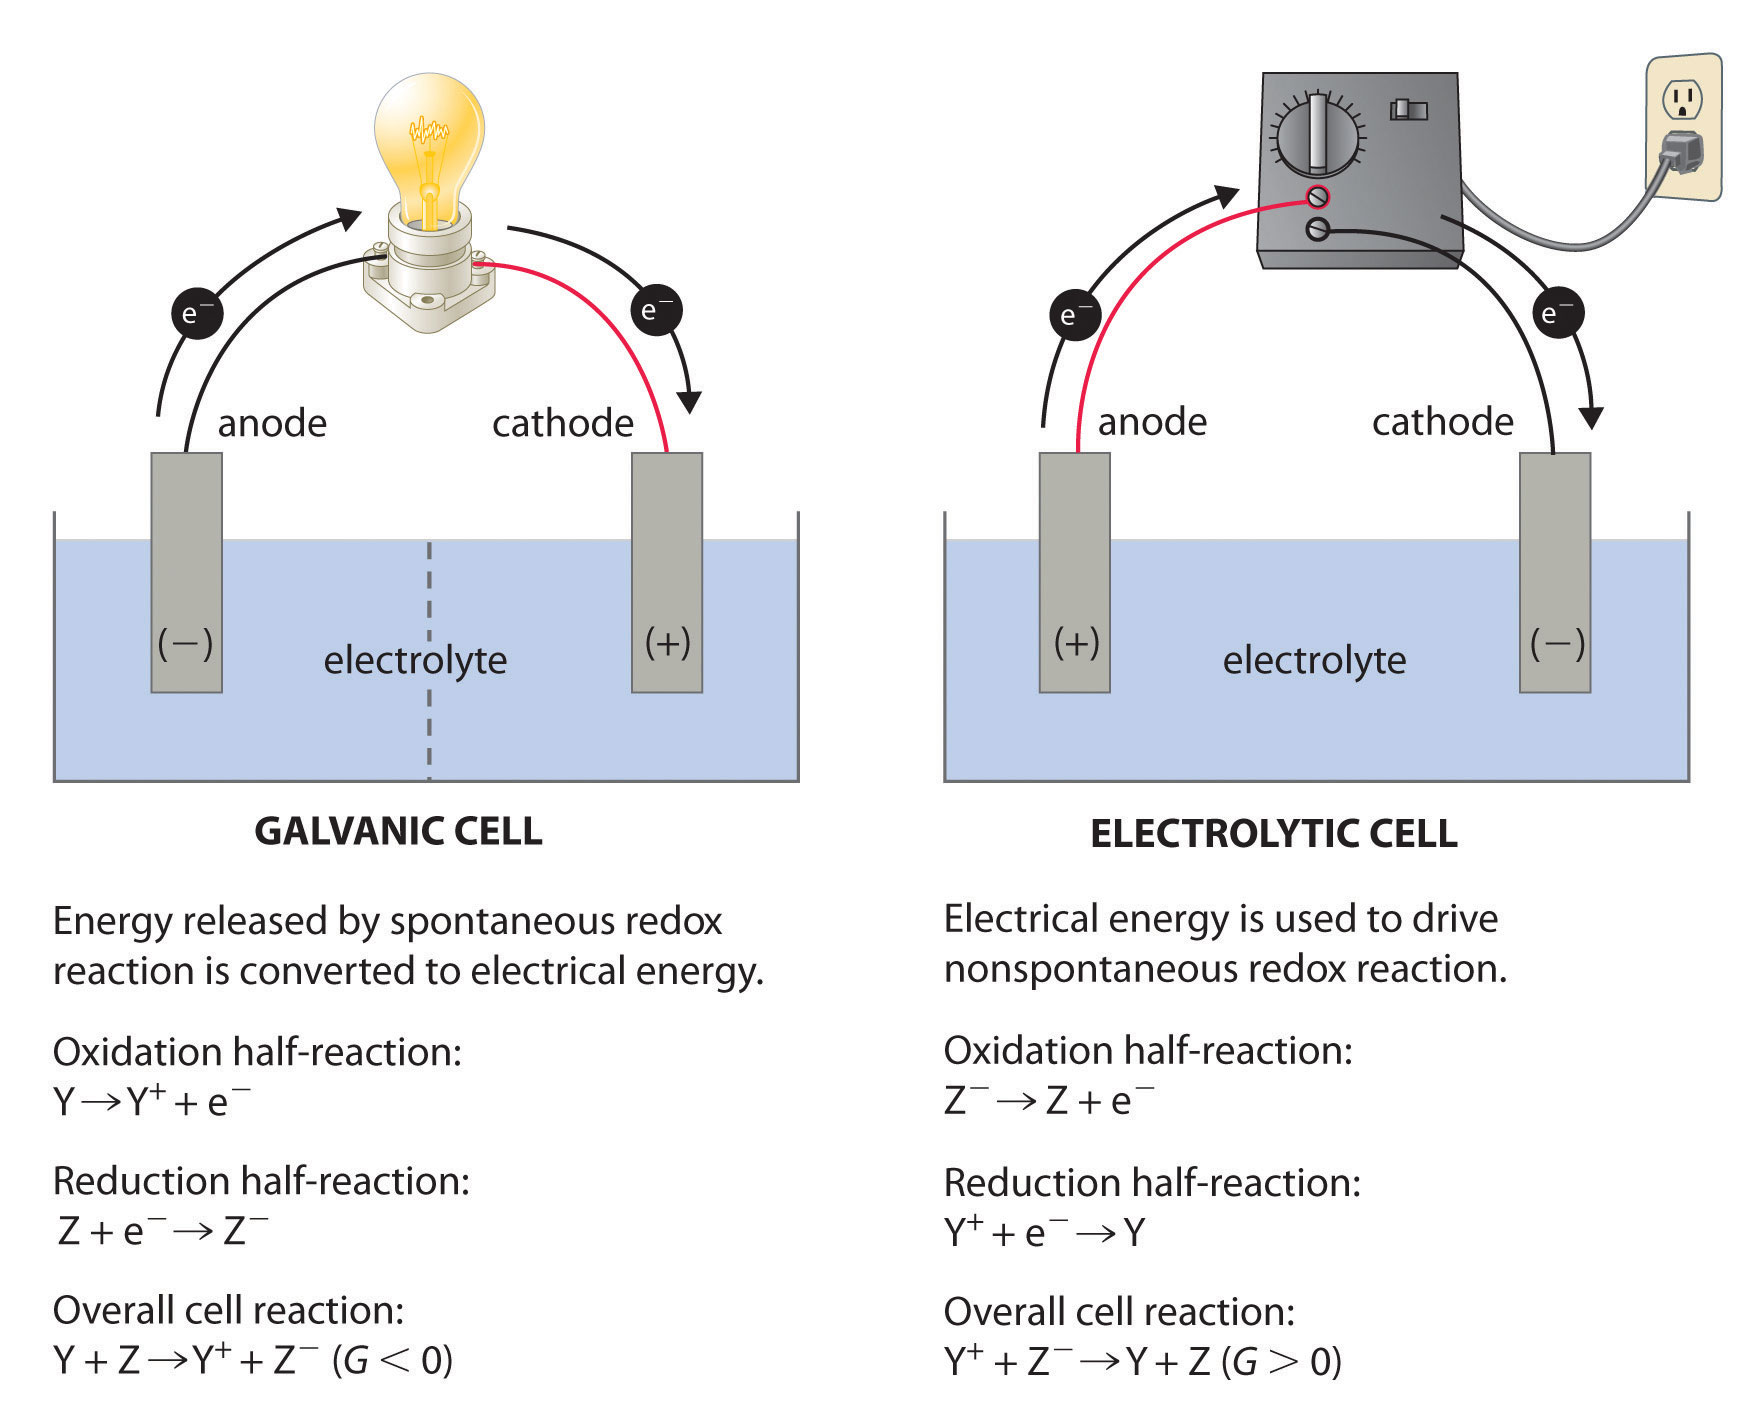 Describing electrochemical cells a galvanic cell left transforms the energy released by a spontaneous redox reaction into electrical energy that can be used to perform work ccuart Gallery